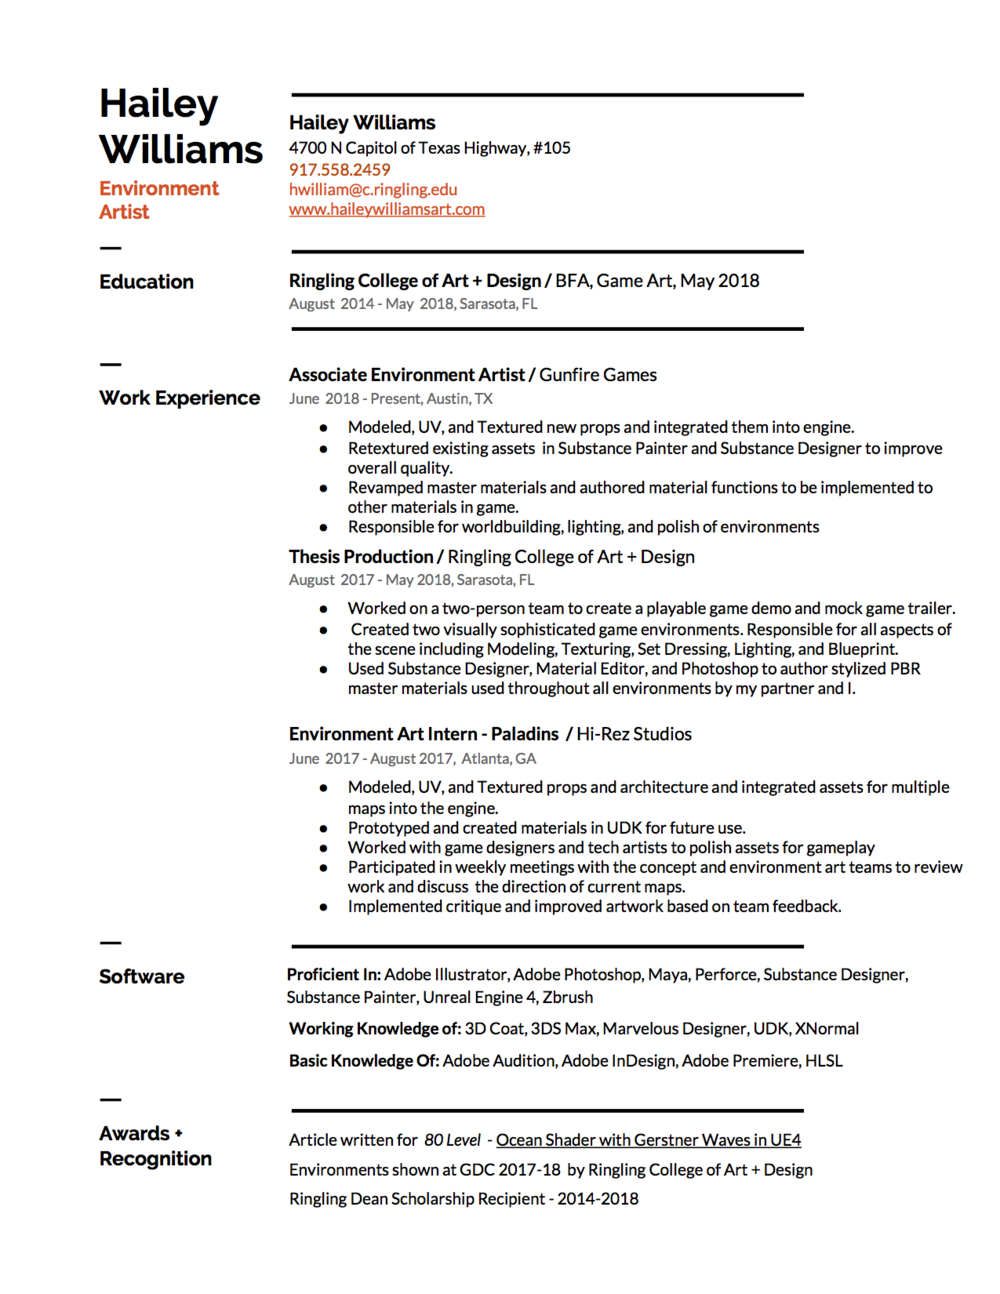 HaileyWilliams_Resume_9:18.png